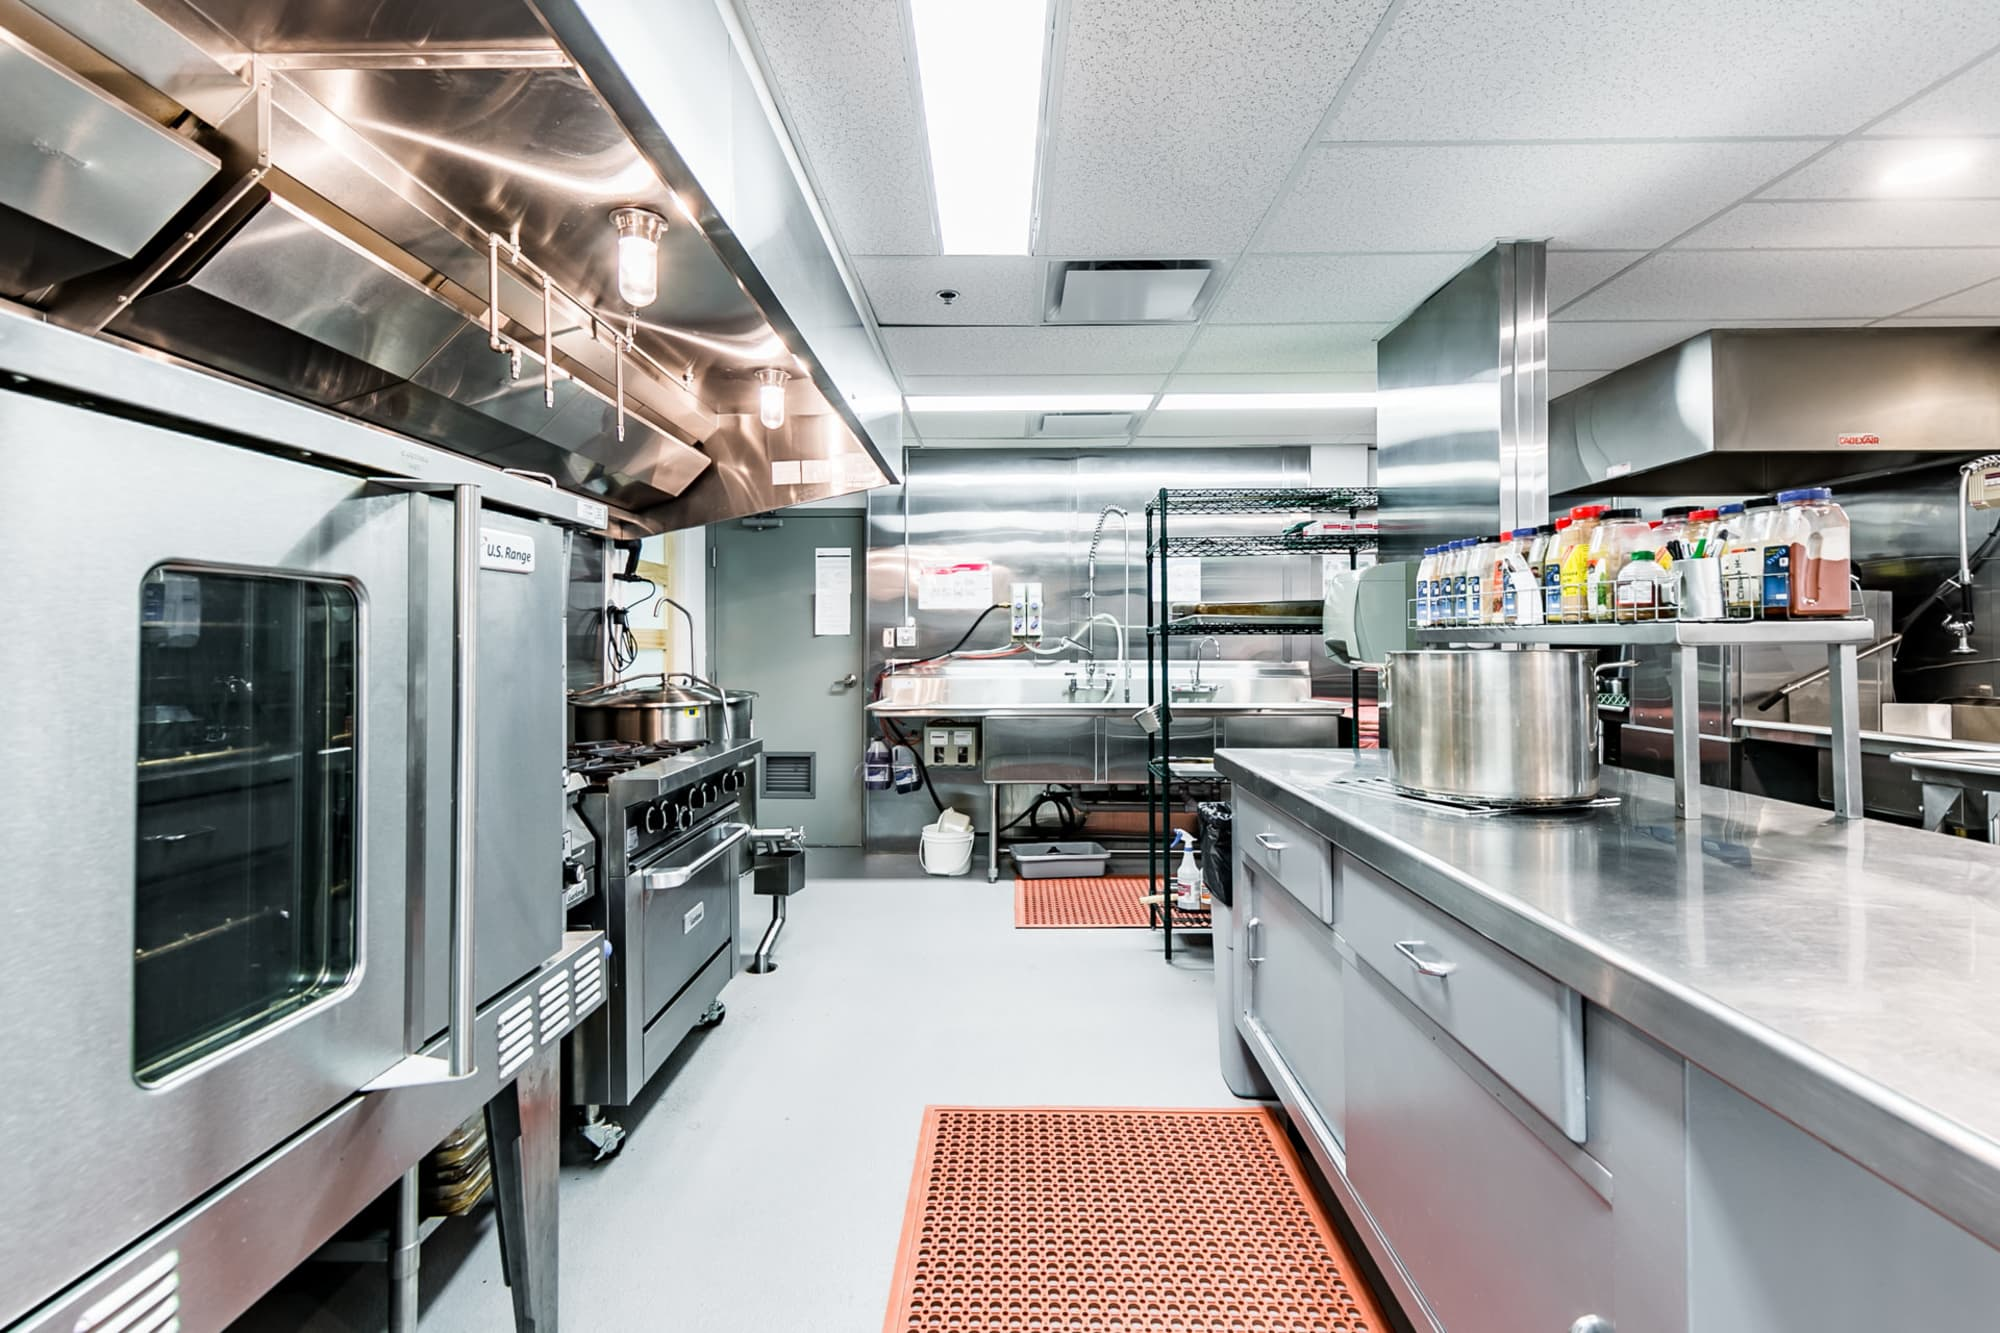 commercial kitchen design in a retirement home